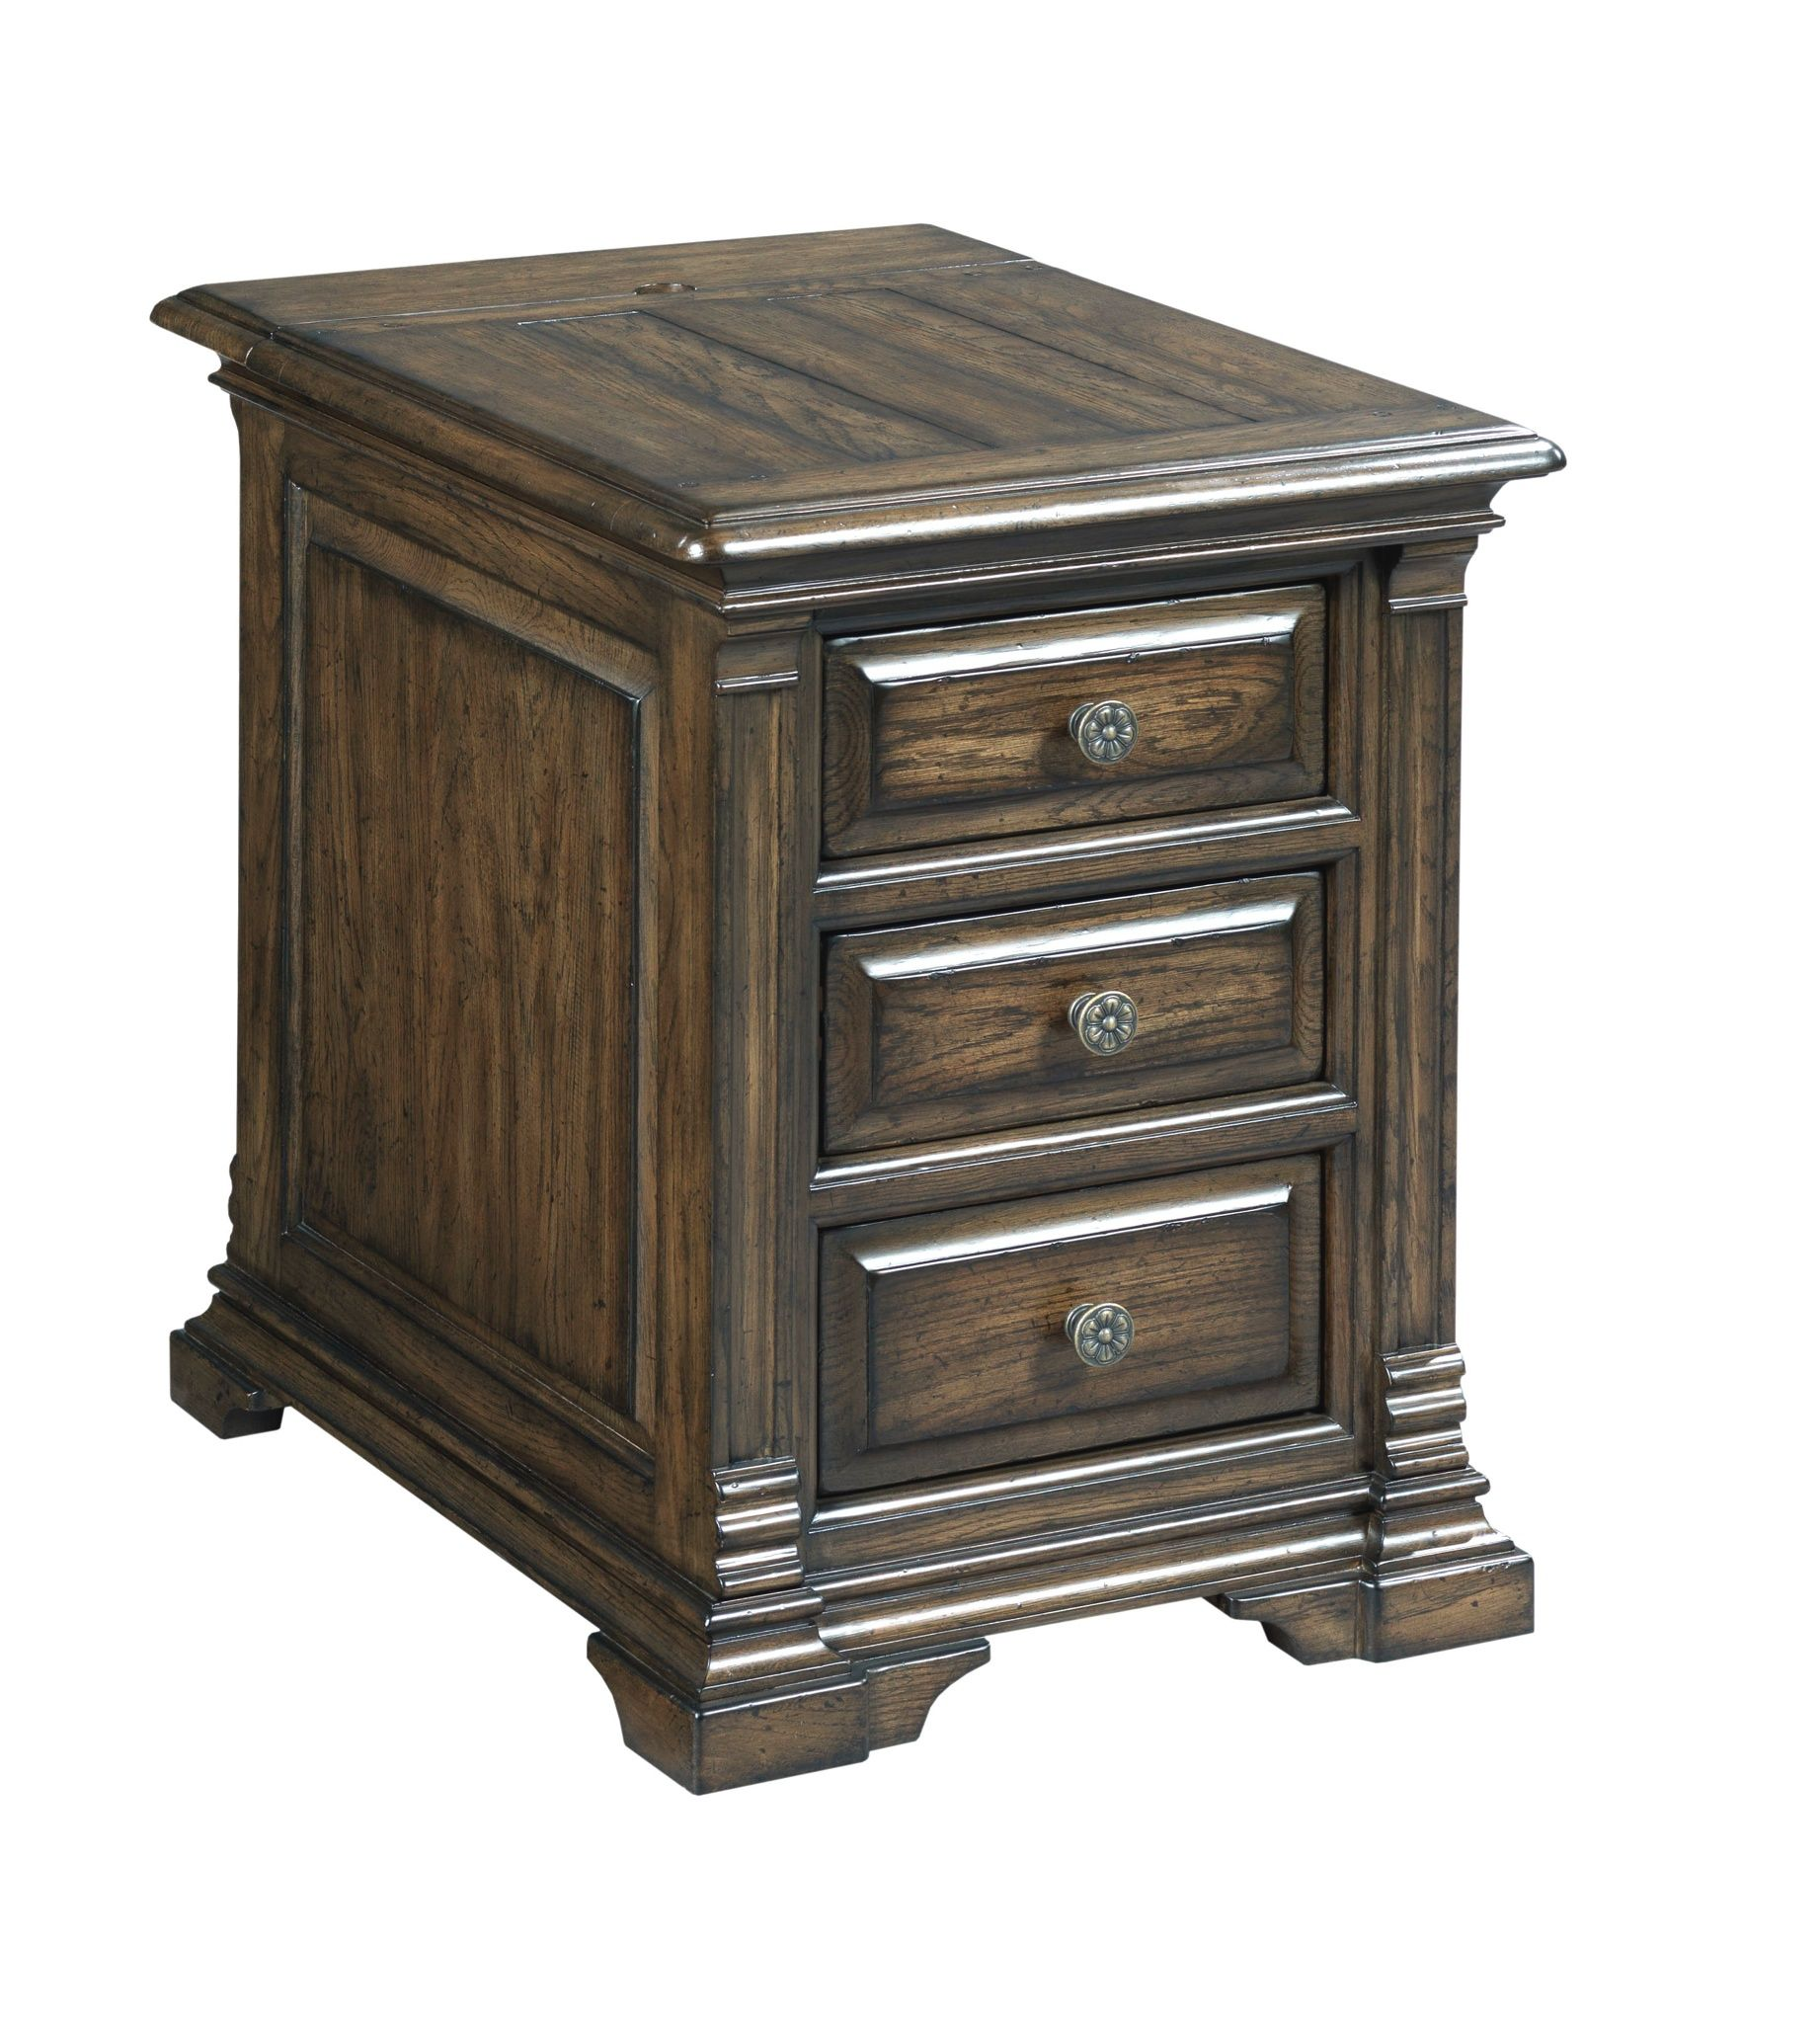 Solid wood bedside table from the Berwick Court collection by Kincaid. New for #hpmkt Spring 2015.